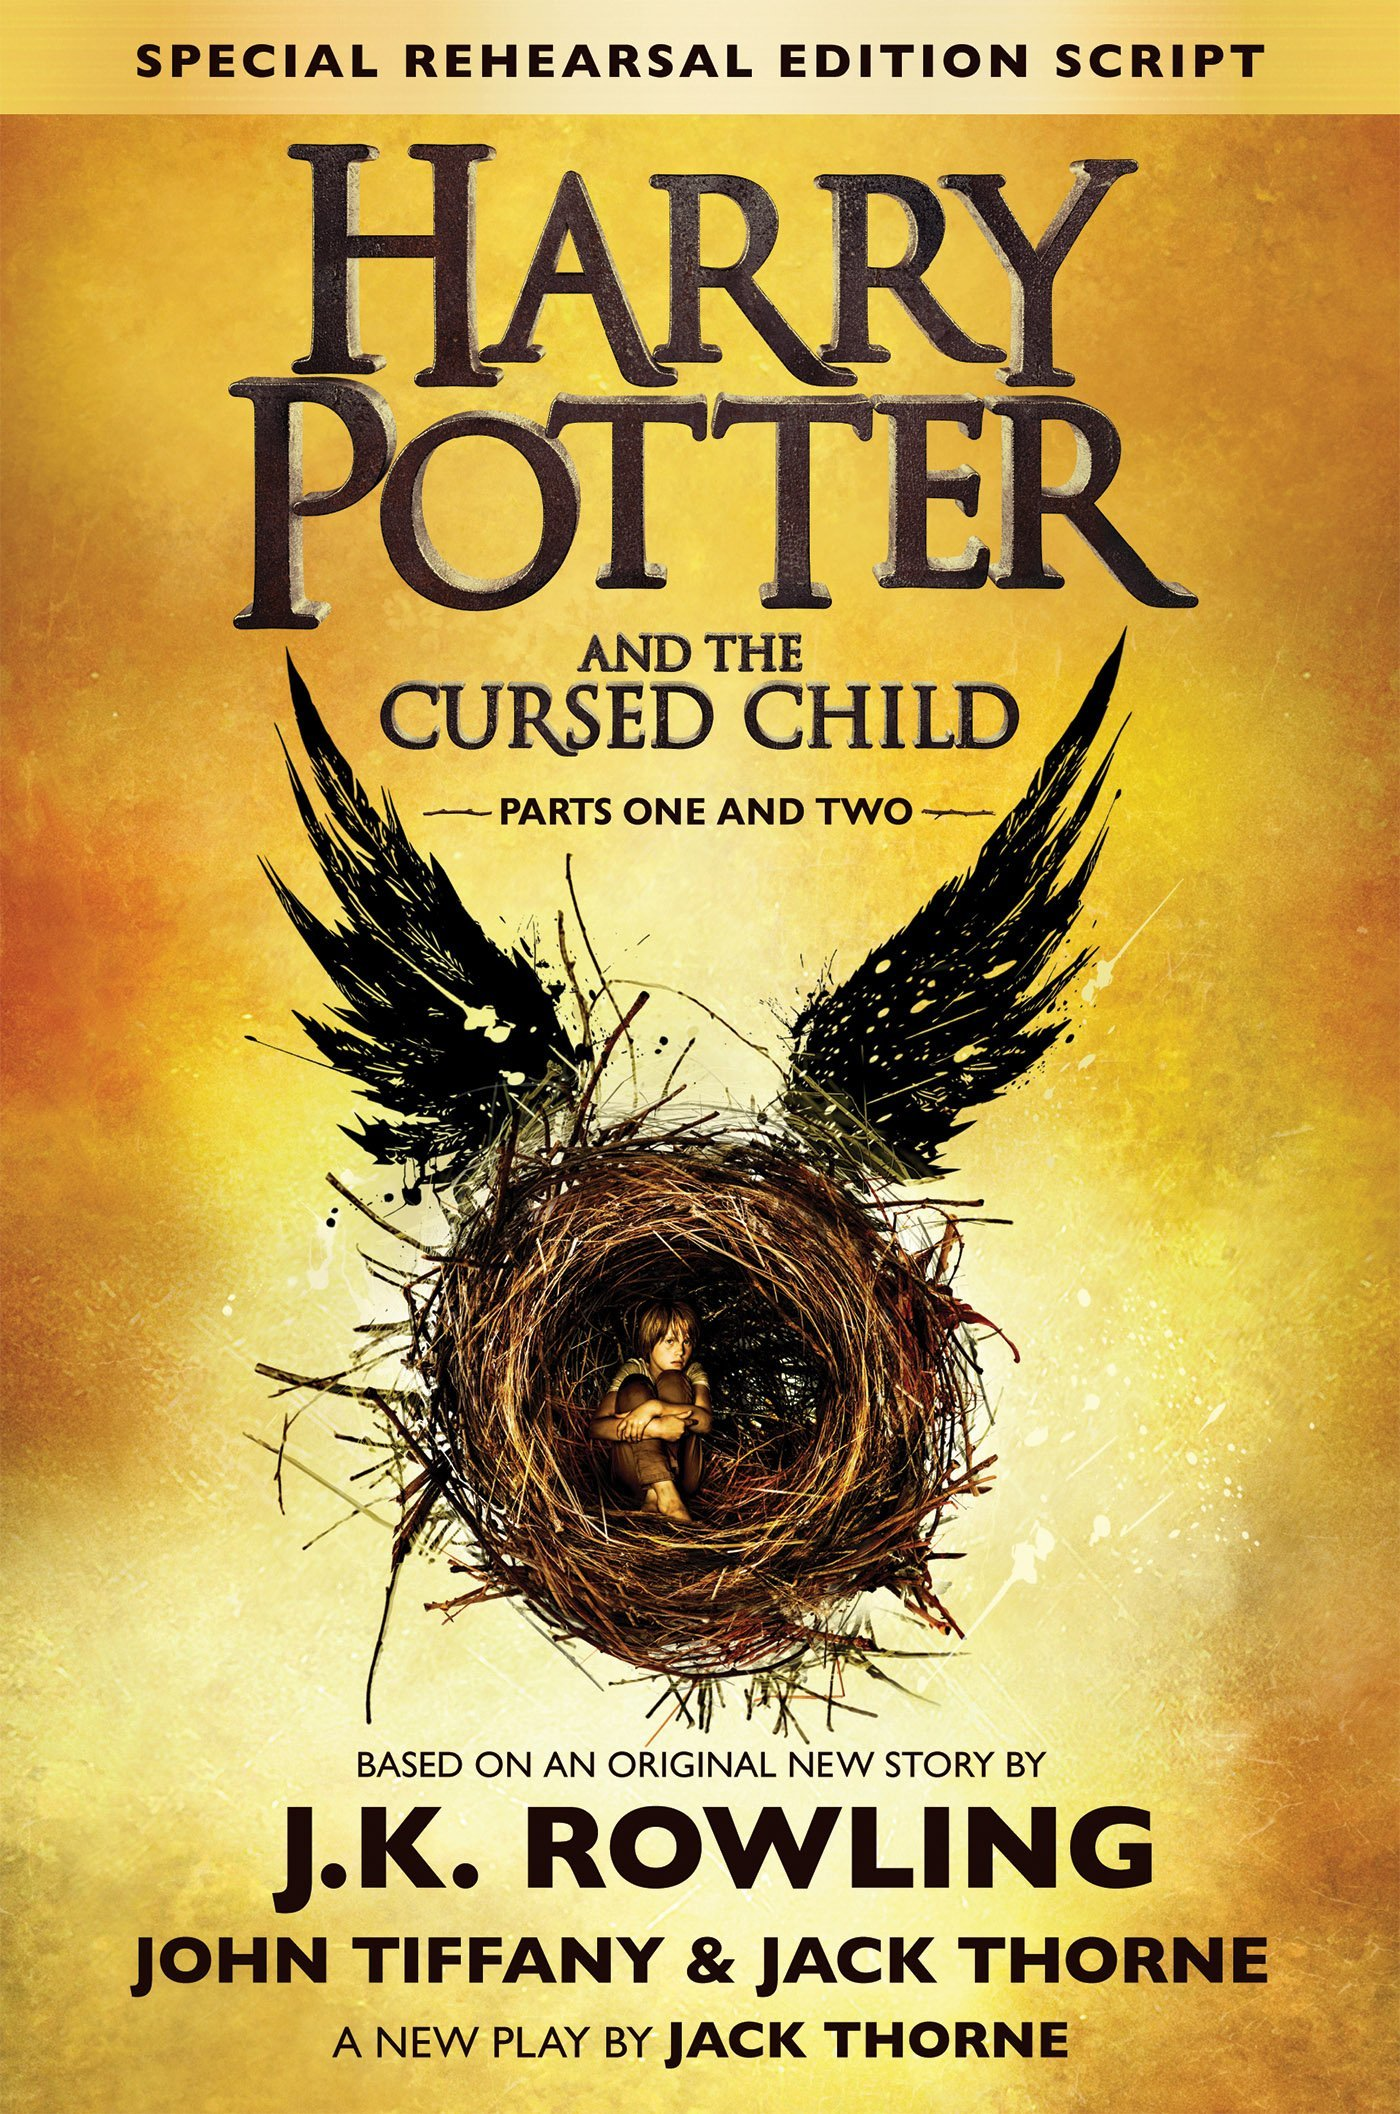 Harry Potter and the Cursed Child Book